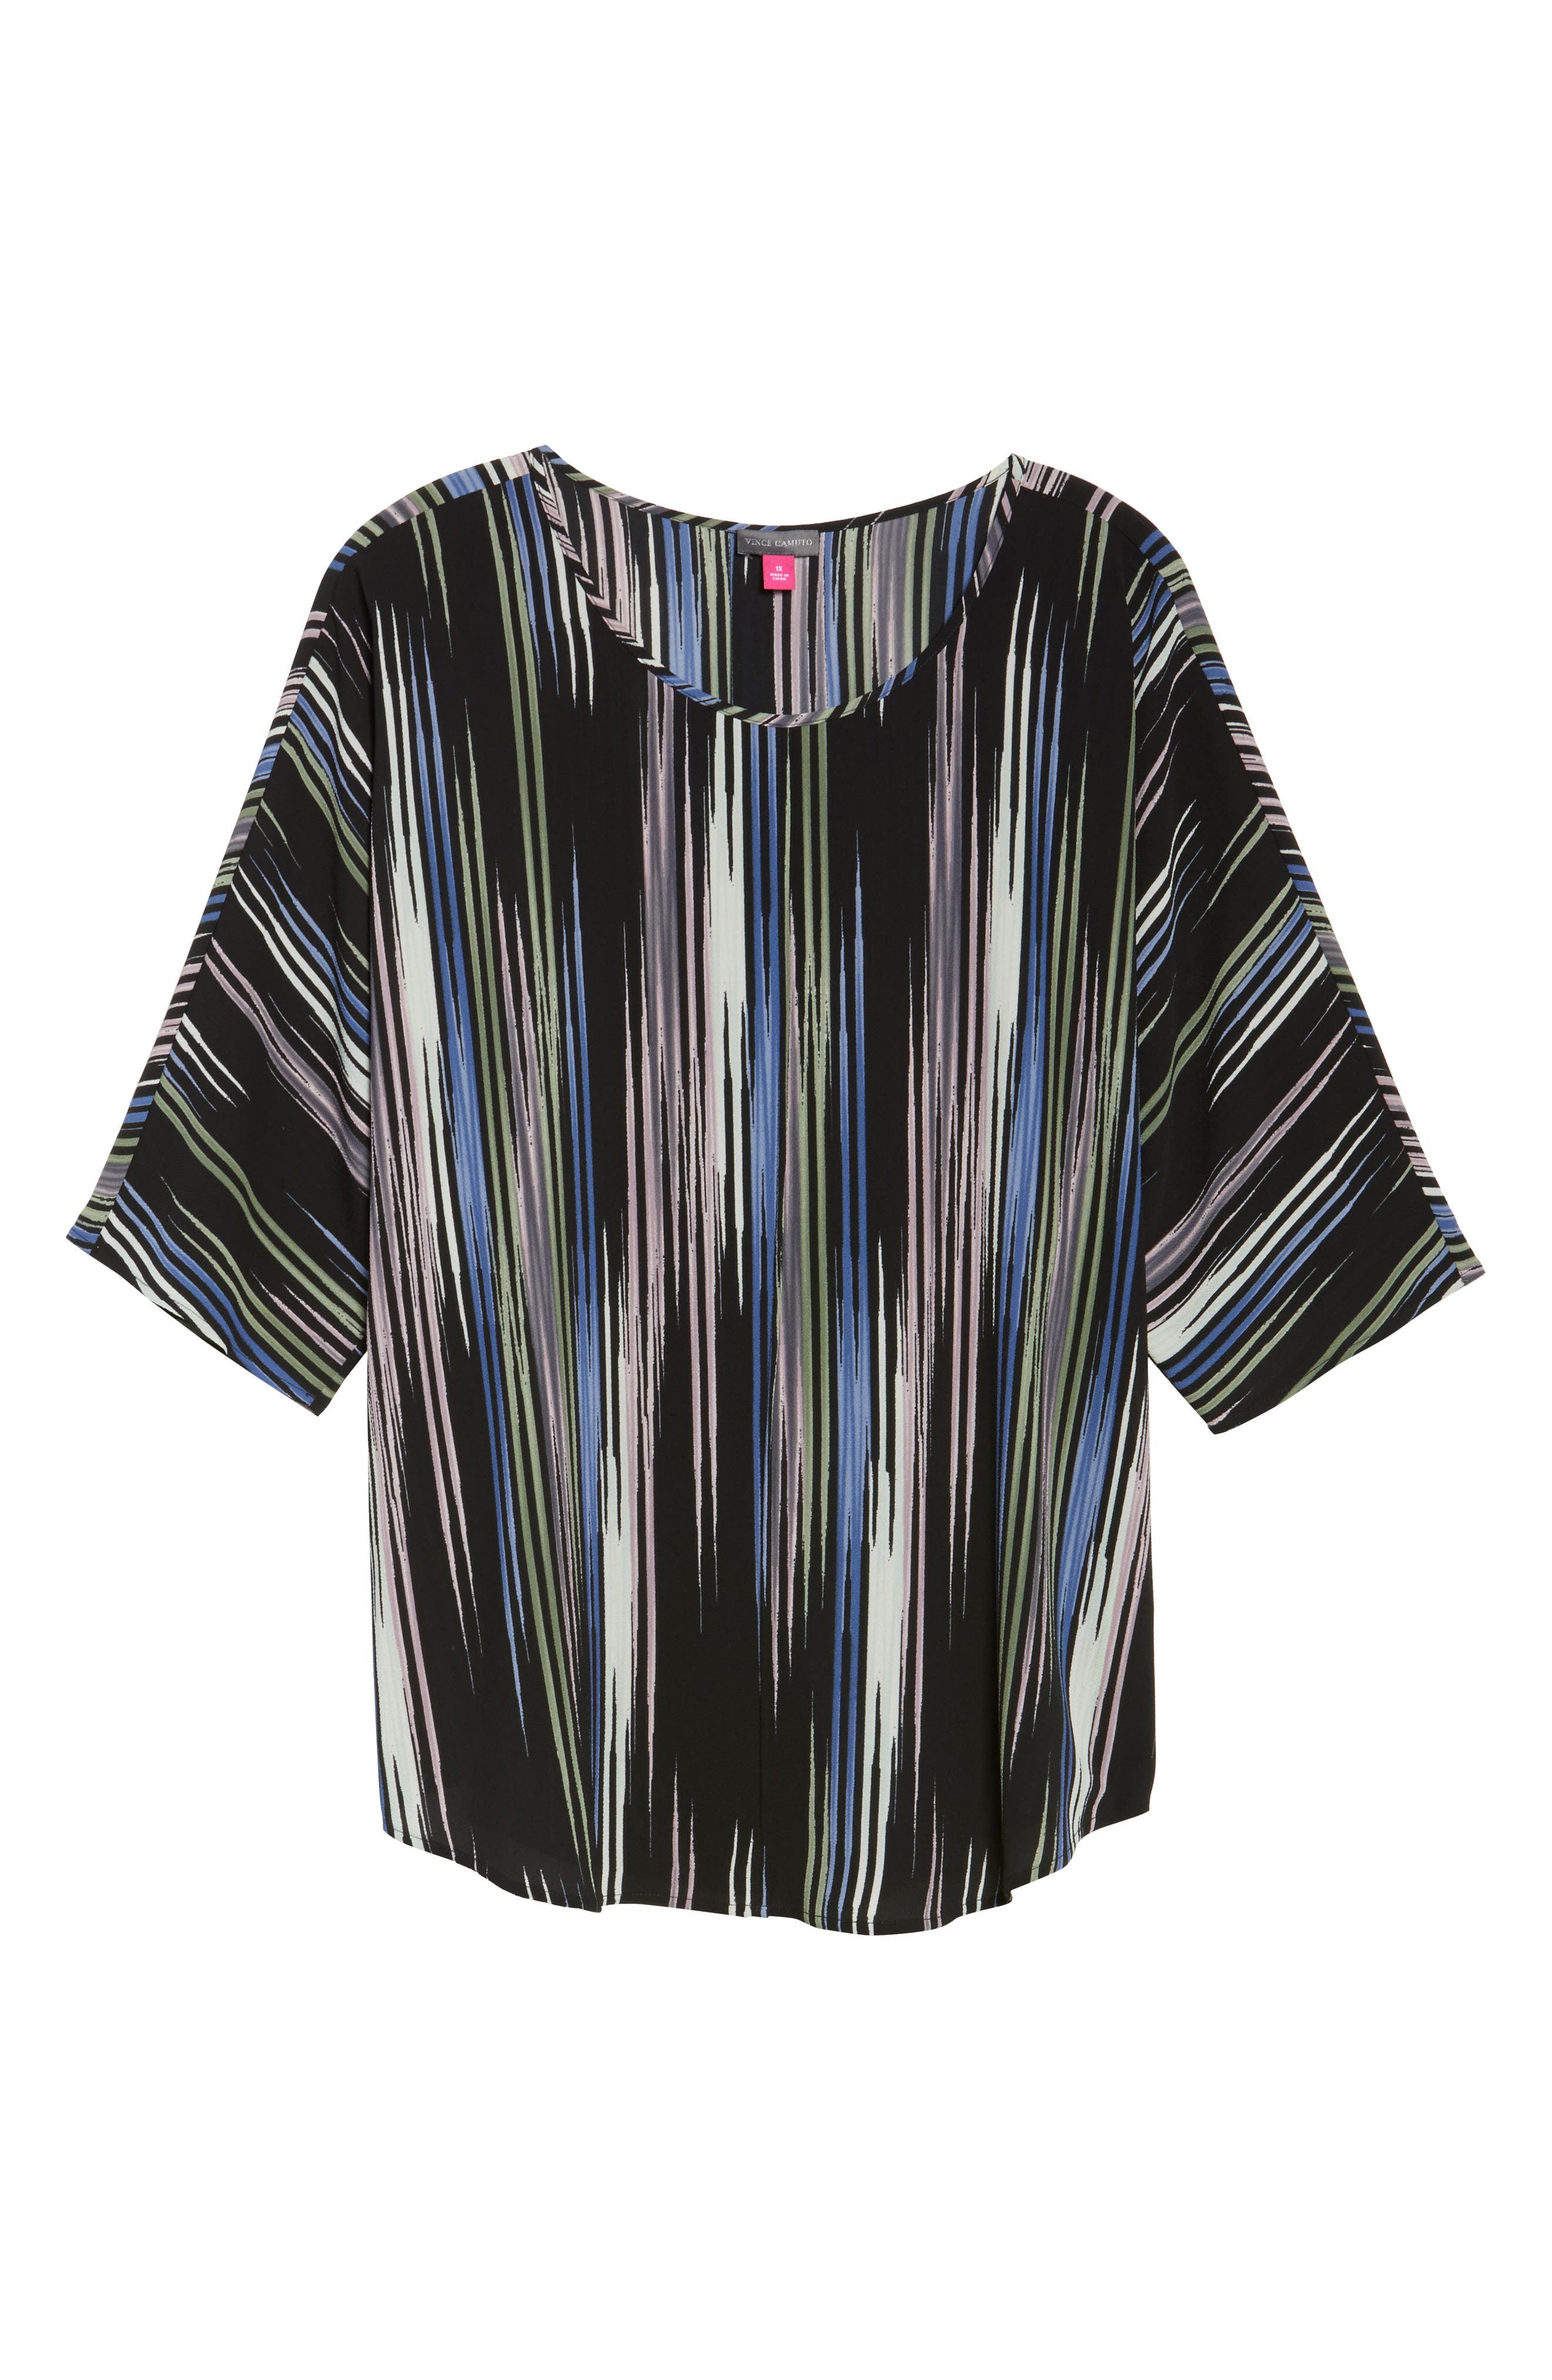 Elbow Sleeve Colorful Peaks Blouse,                             Alternate thumbnail 11, color,